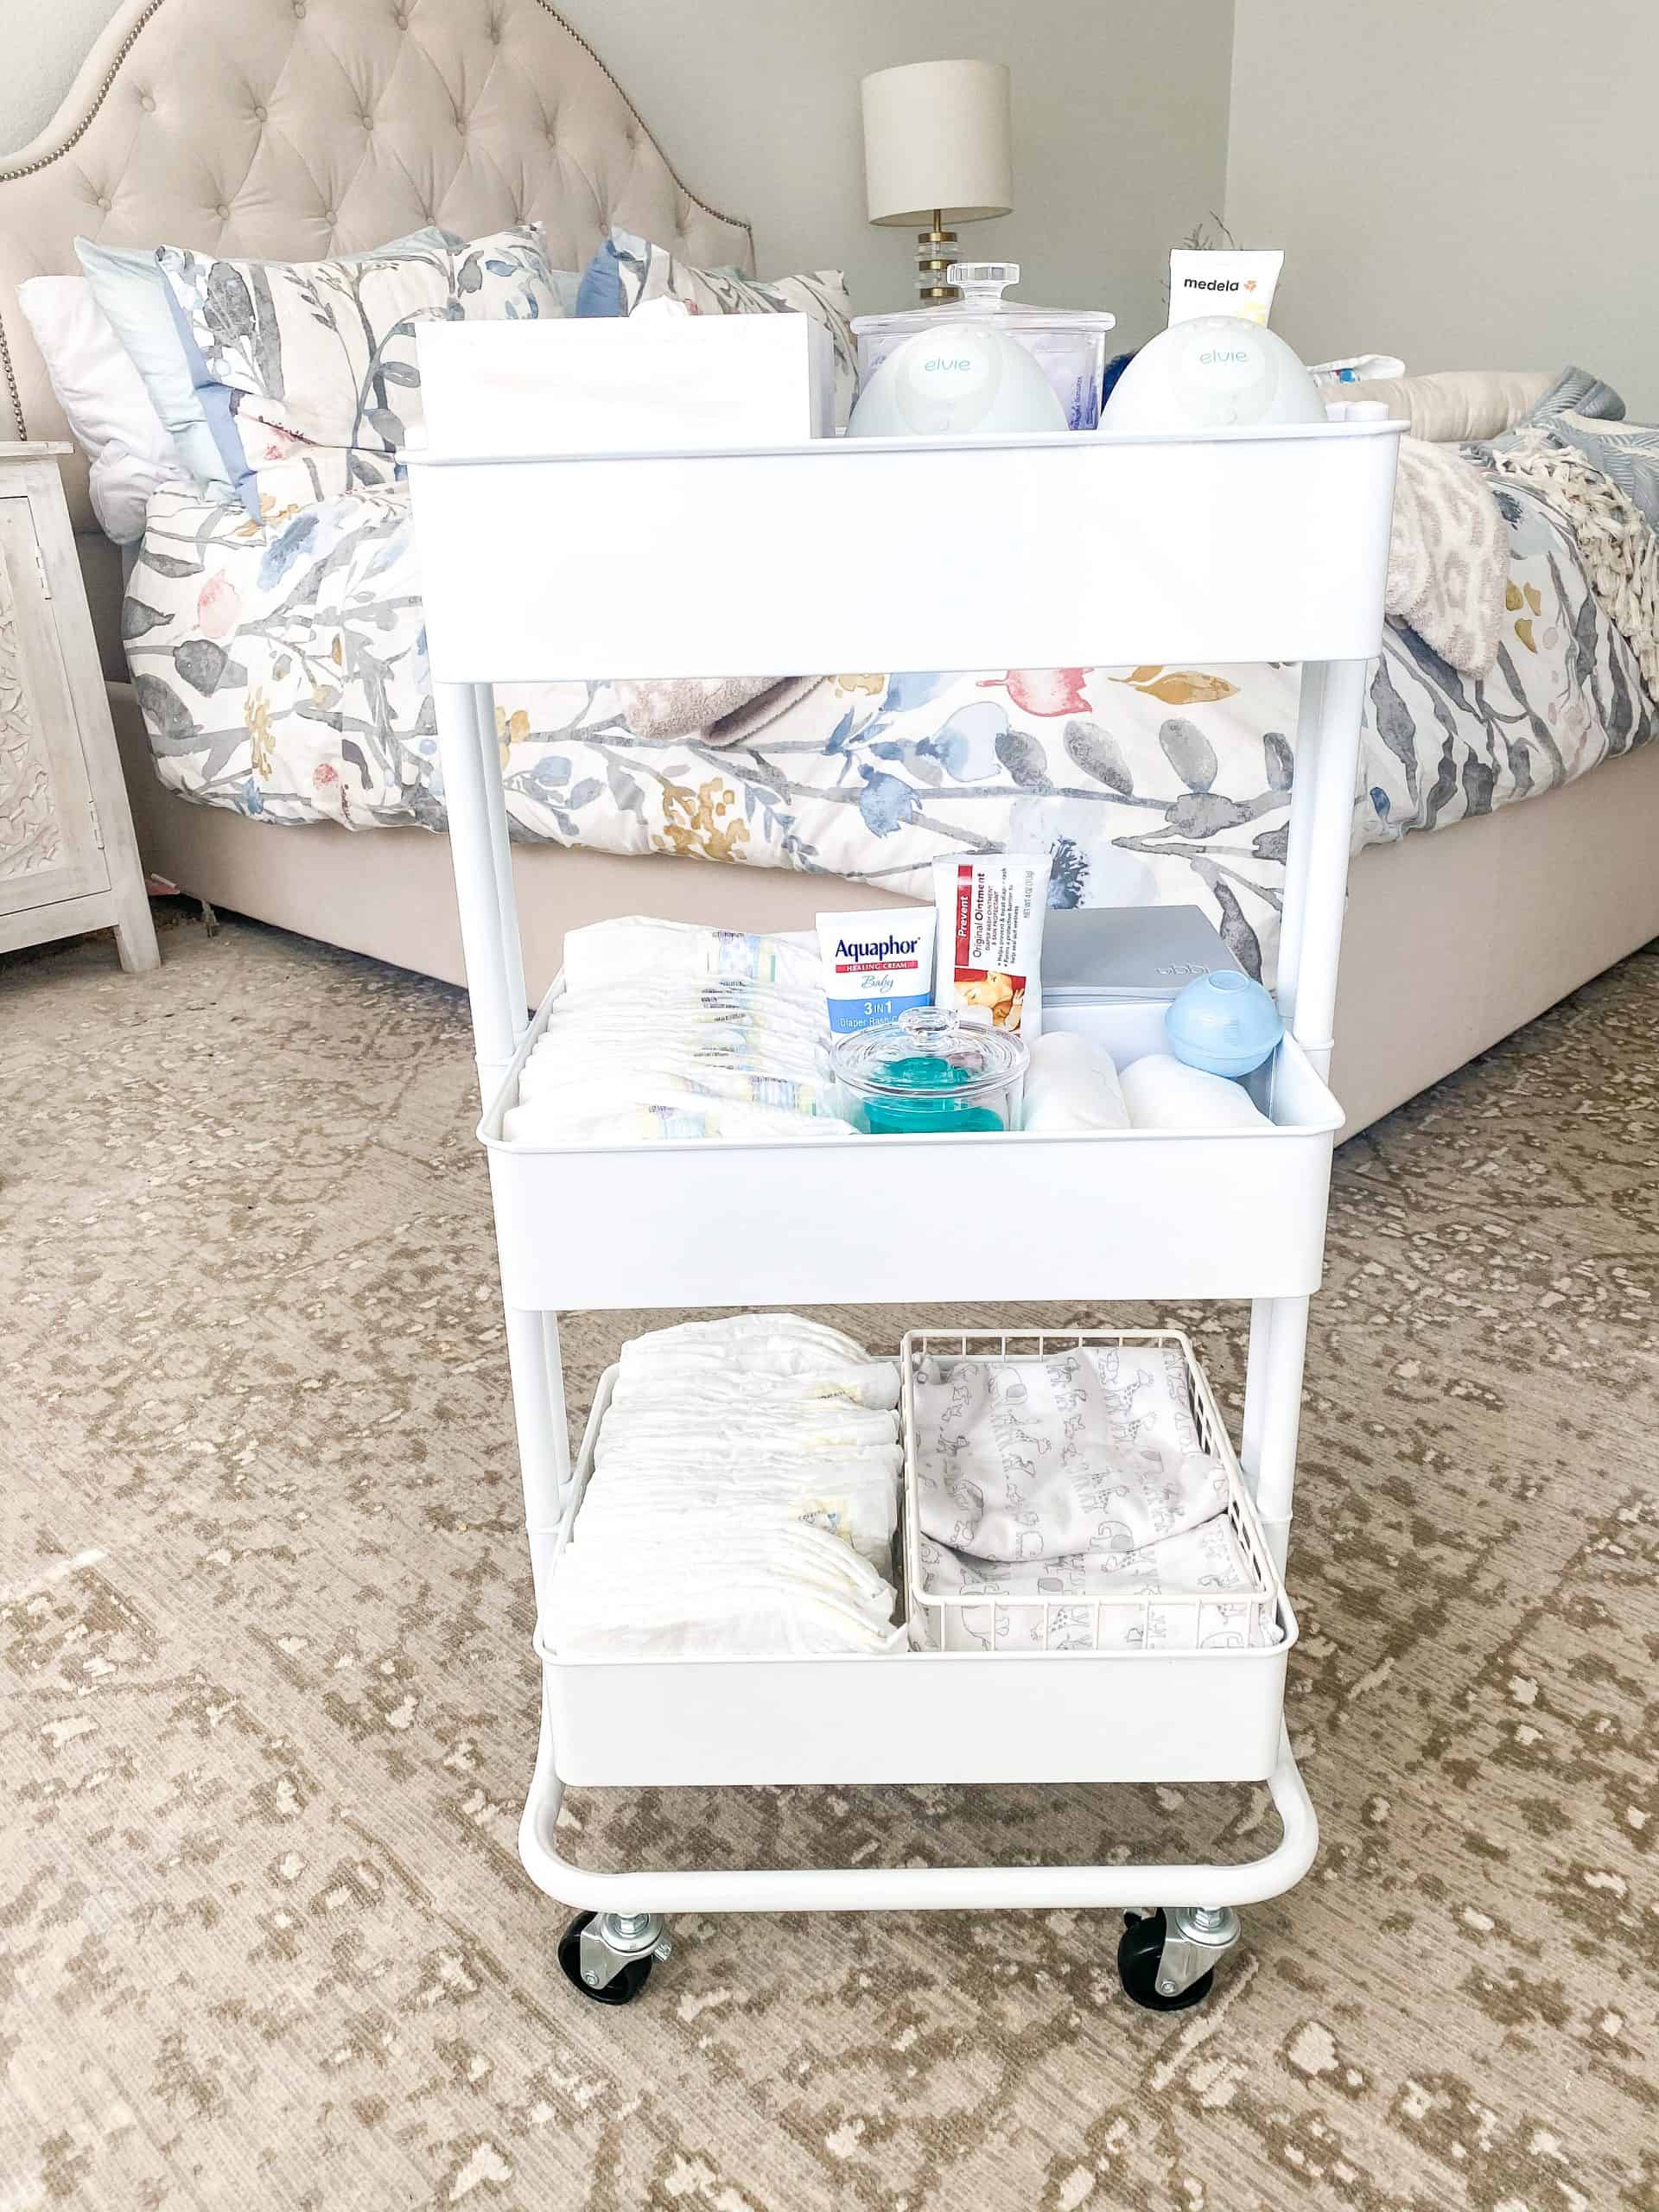 Newborn Cart by popular Dallas motherhood blog, Glamorous Versatility: image of a The Container Store White 3-Tier Rolling Cart, The Container Store White Stacking Wire Bins, Target Ubbi Wipes Dispenser, The Container Store Bliss Acrylic Canisters, The Container Store iDesign Linus Shallow Drawer Organizers, diapers, binkies, Aquaphor, and burp cloths.